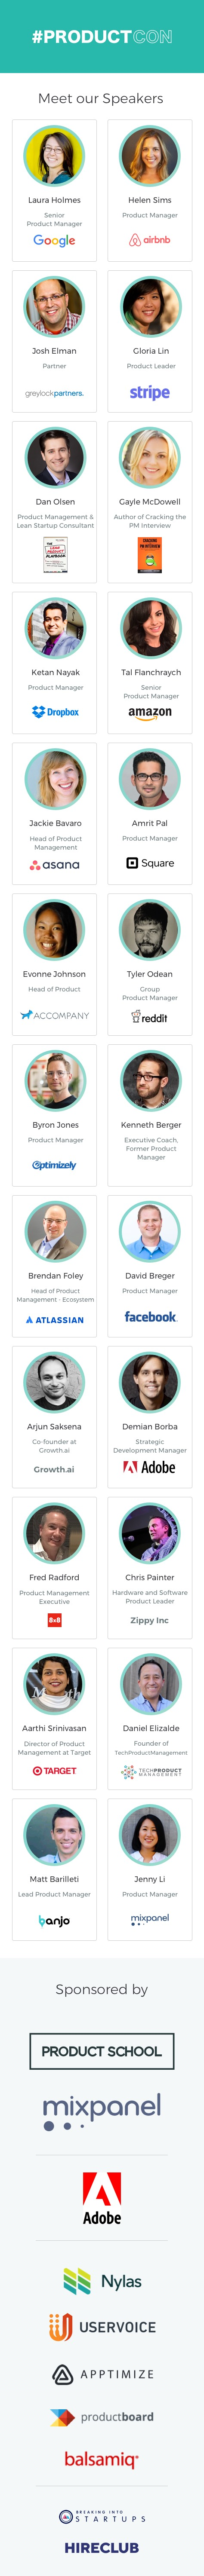 ProductCon Silicon Valley Speakers